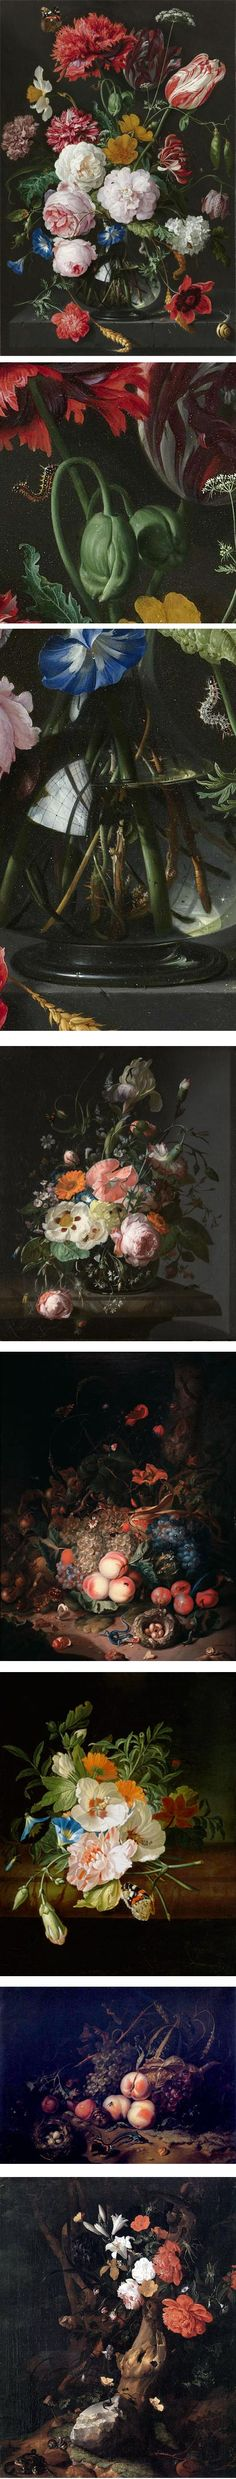 "Rachel Ruysch. linesandcolors: ""Dutch painter Rachel Ruysch, whose life and career straddled the seventeenth and eighteeth centuries, was renowned for her striking still life paintings of flowers, which occasionally featured fruit and crystal glassware. """